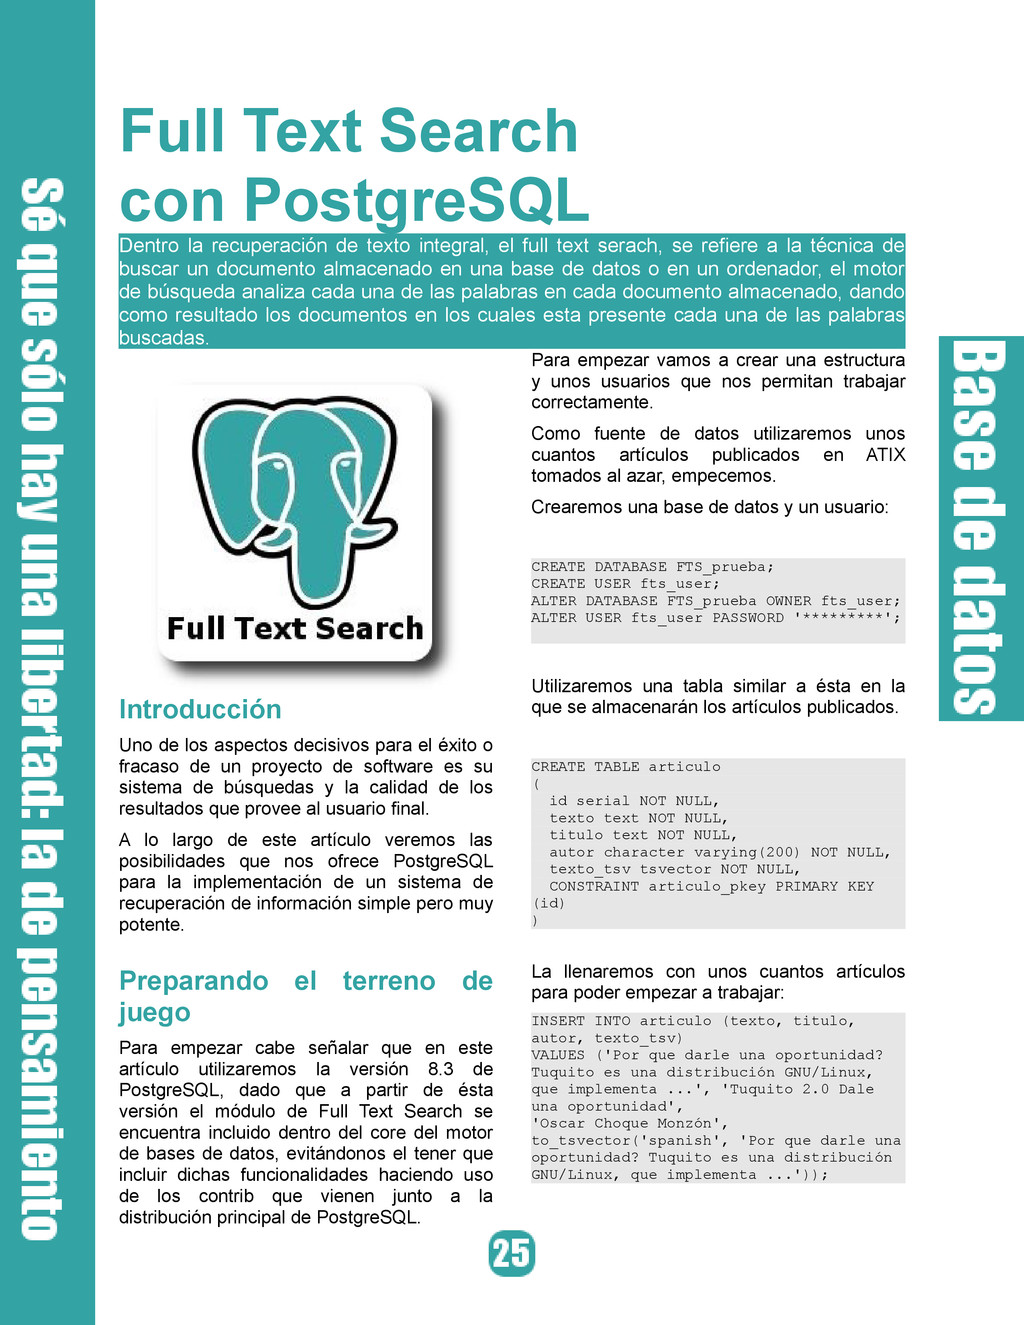 Full Text Search con PostgreSQL Dentro la recup...